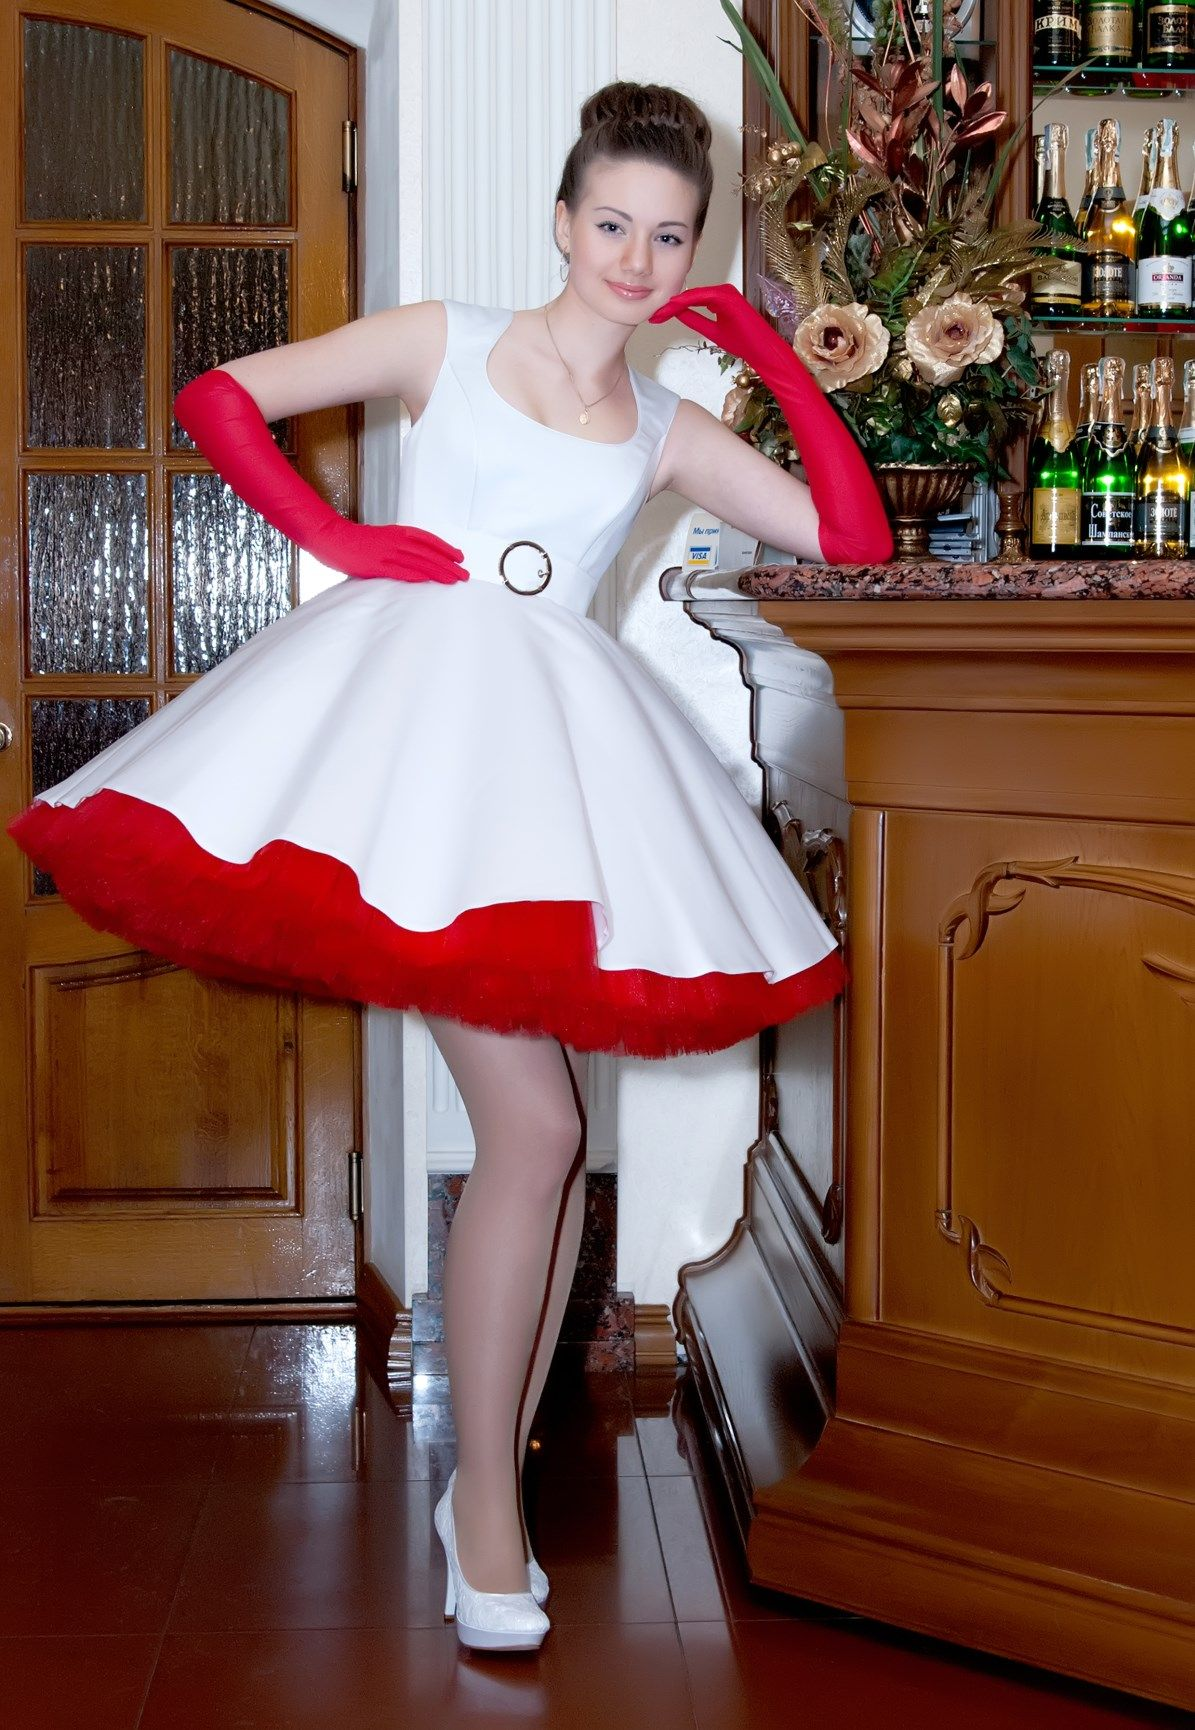 Frilly Sissy Tumblr within dress for a party in the new look 50s style www.retro-dress.ru